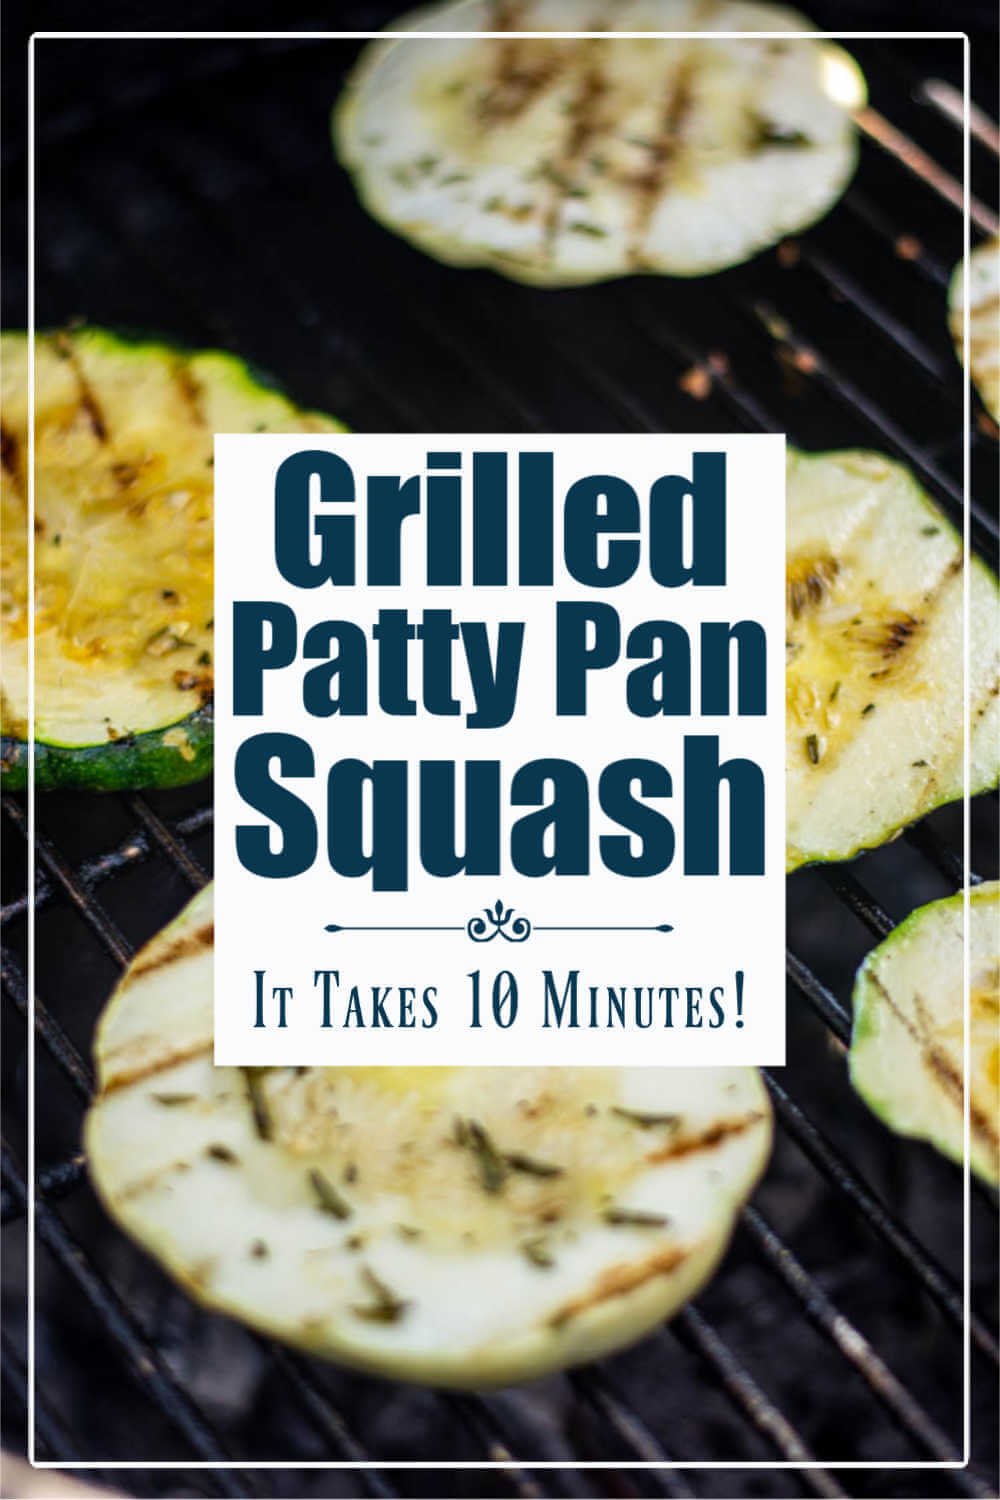 Grilled Patty Pan Squash - 10 Minute Grilled Veggie